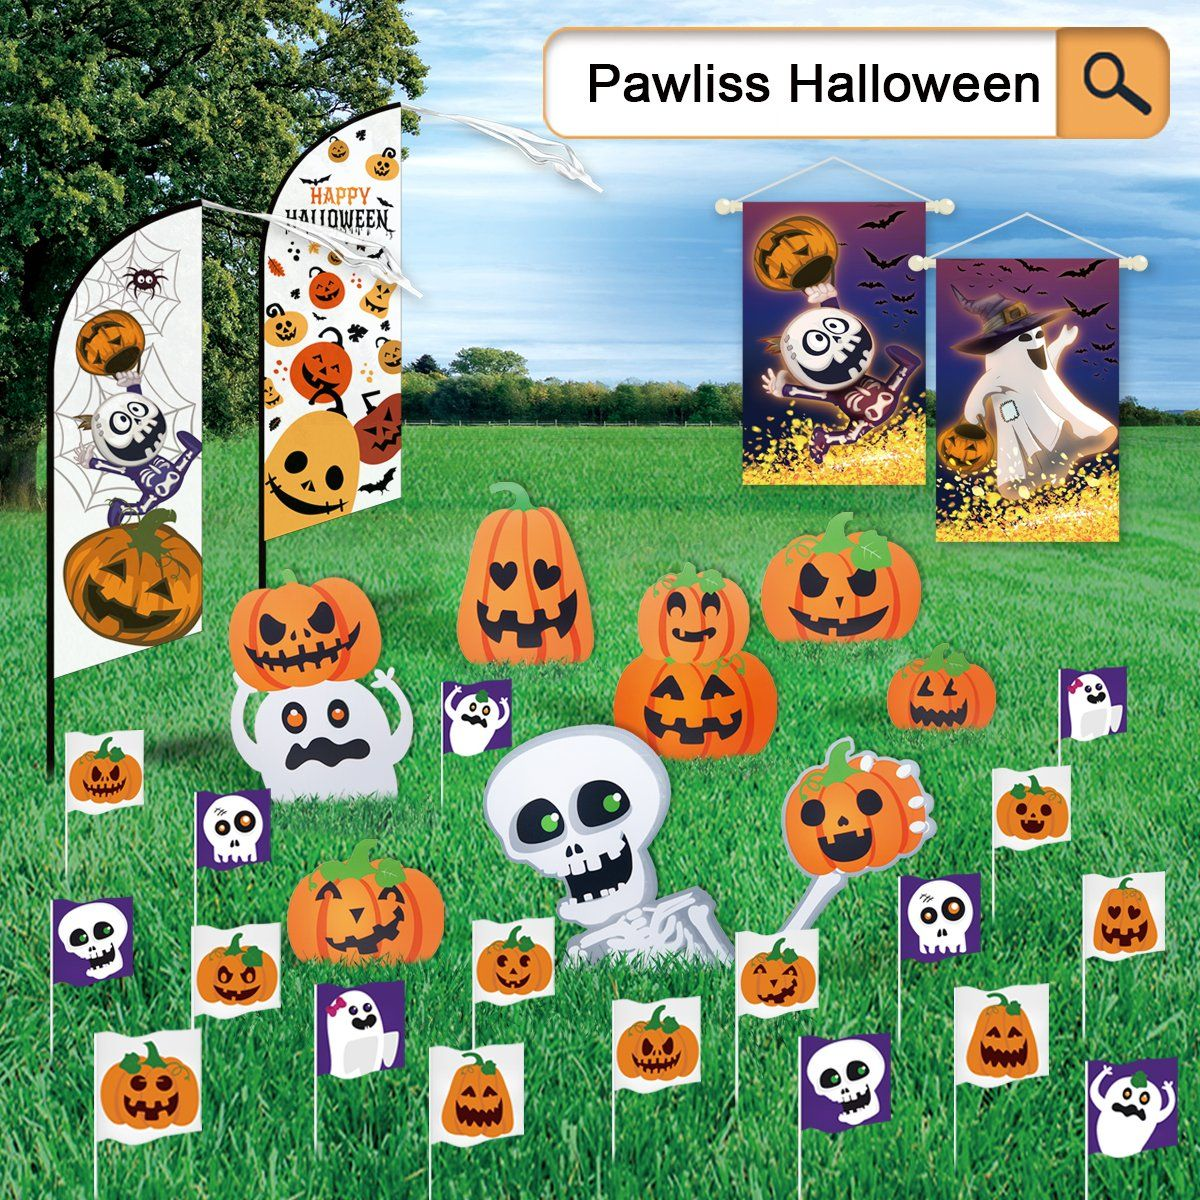 Pawliss Halloween Decorations Outdoor Extra Large 8ct Pumpkins Skeleton And Ghost Corrugate Yard Halloween Outdoor Decorations Halloween Decorations Halloween